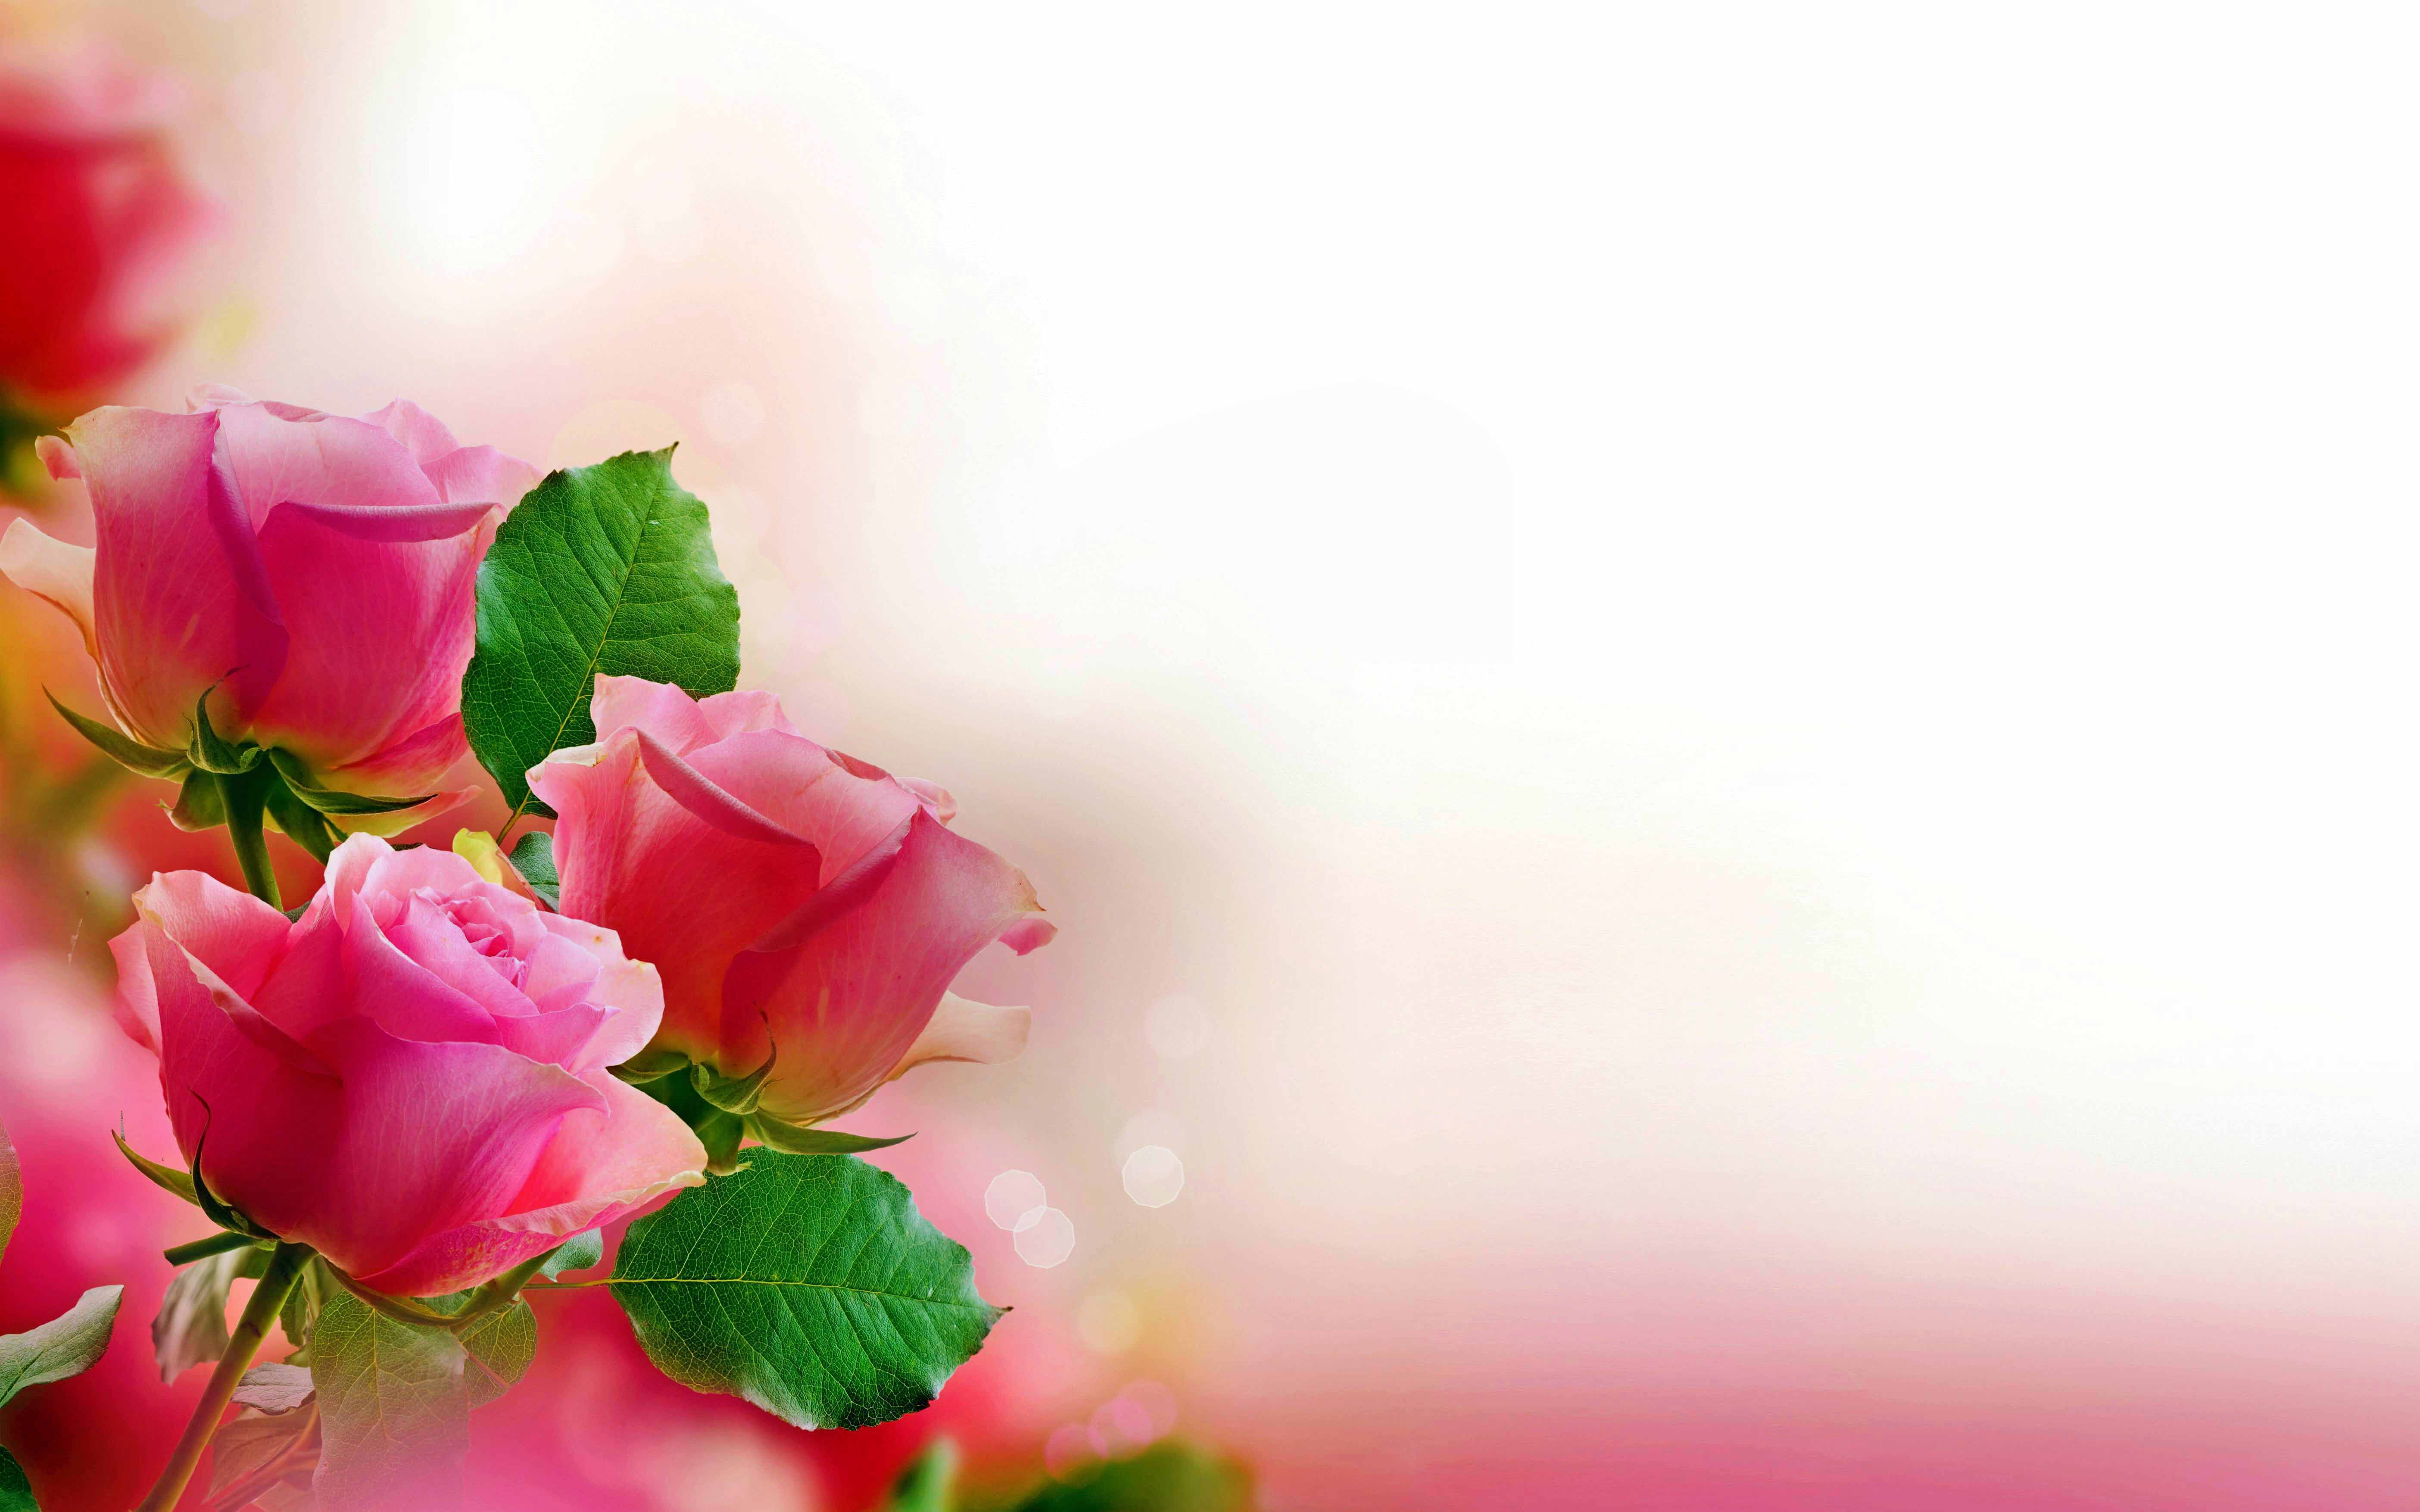 Pink Rose Wallpaper Flowers Nature Wallpapers For Free Download Rose Flower Wallpaper Flower Images Flower Images Wallpapers